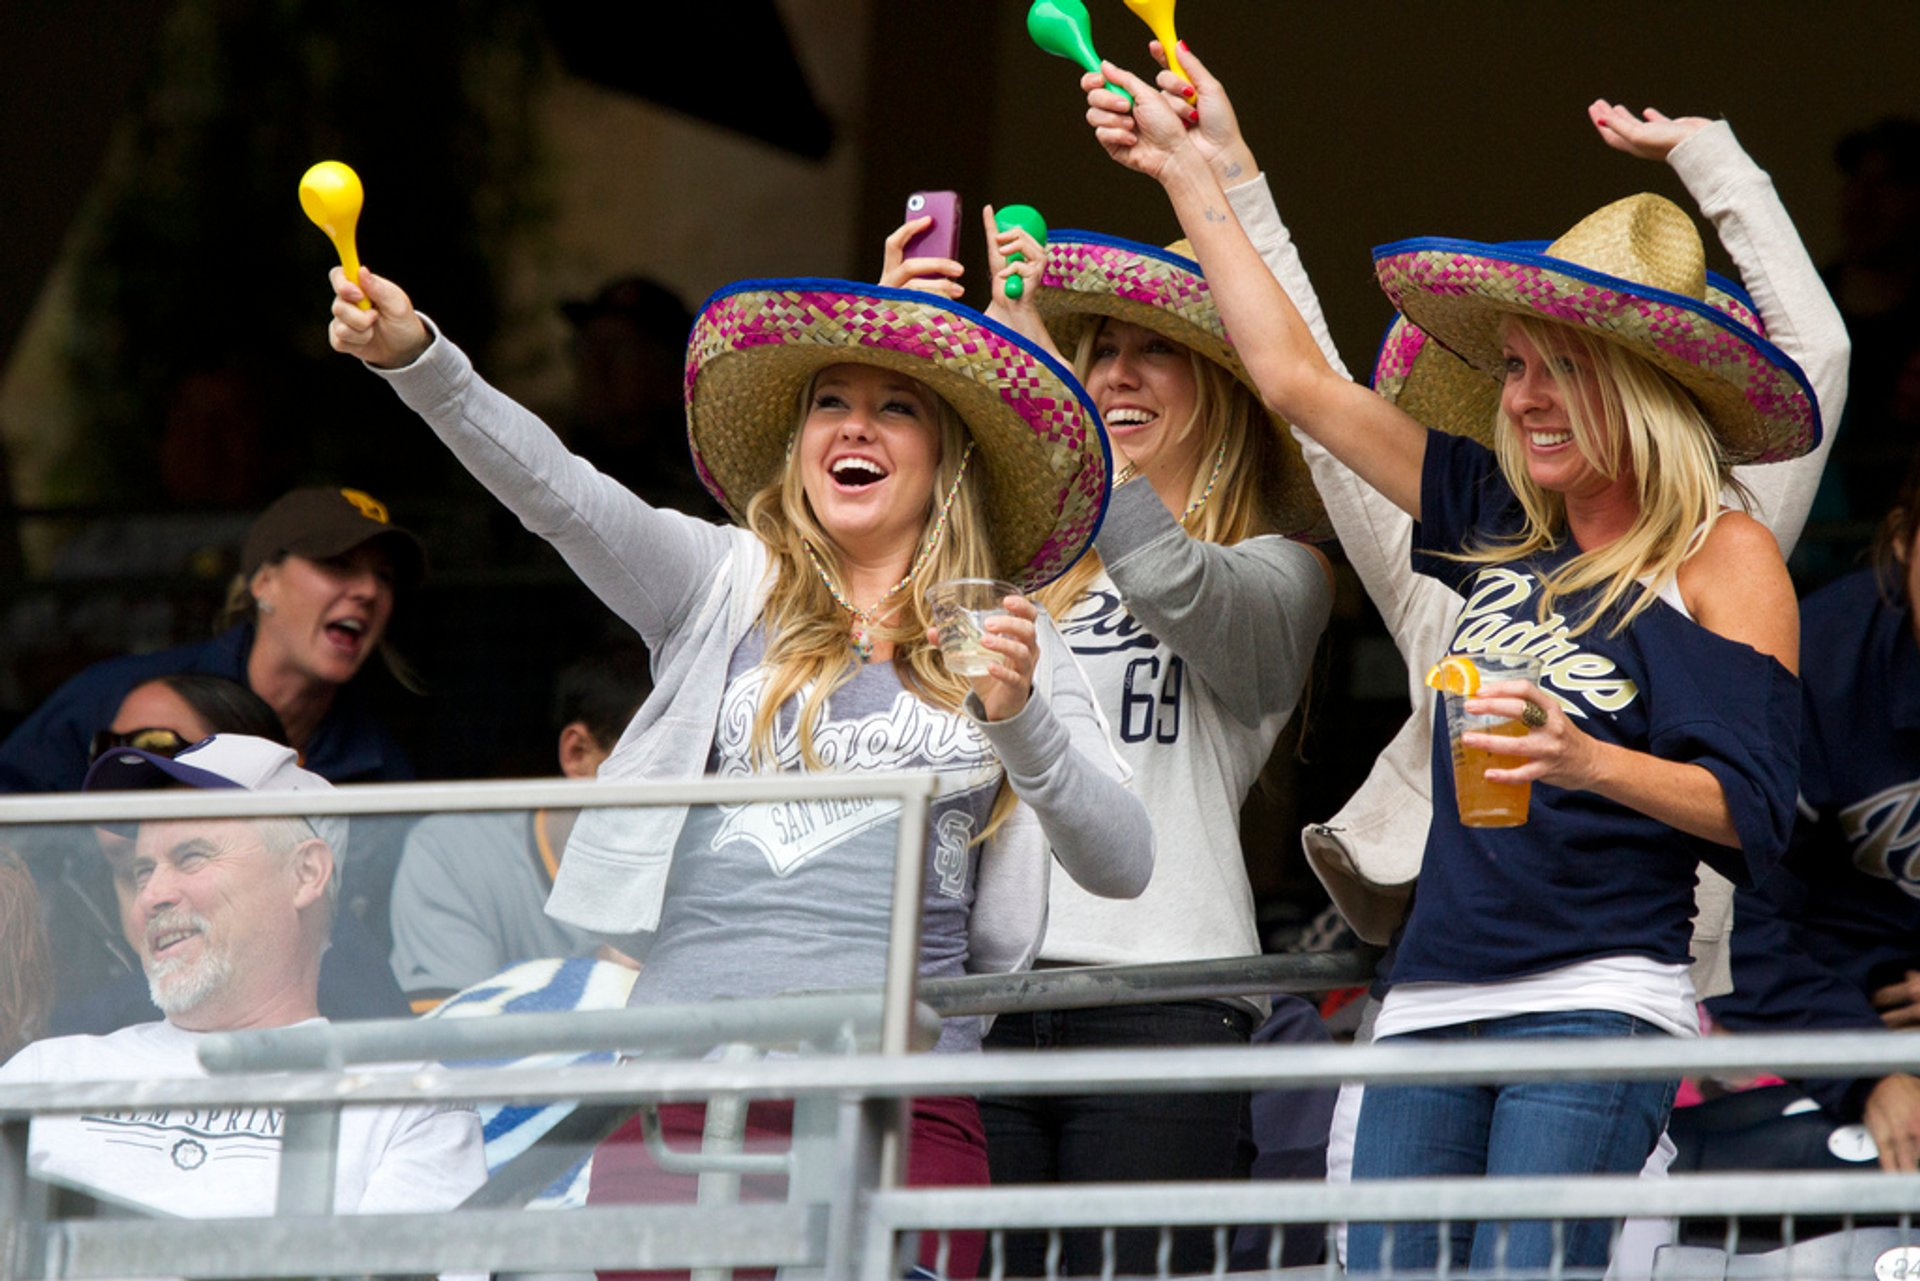 Cinco de Mayo in San Diego - Best Season 2020